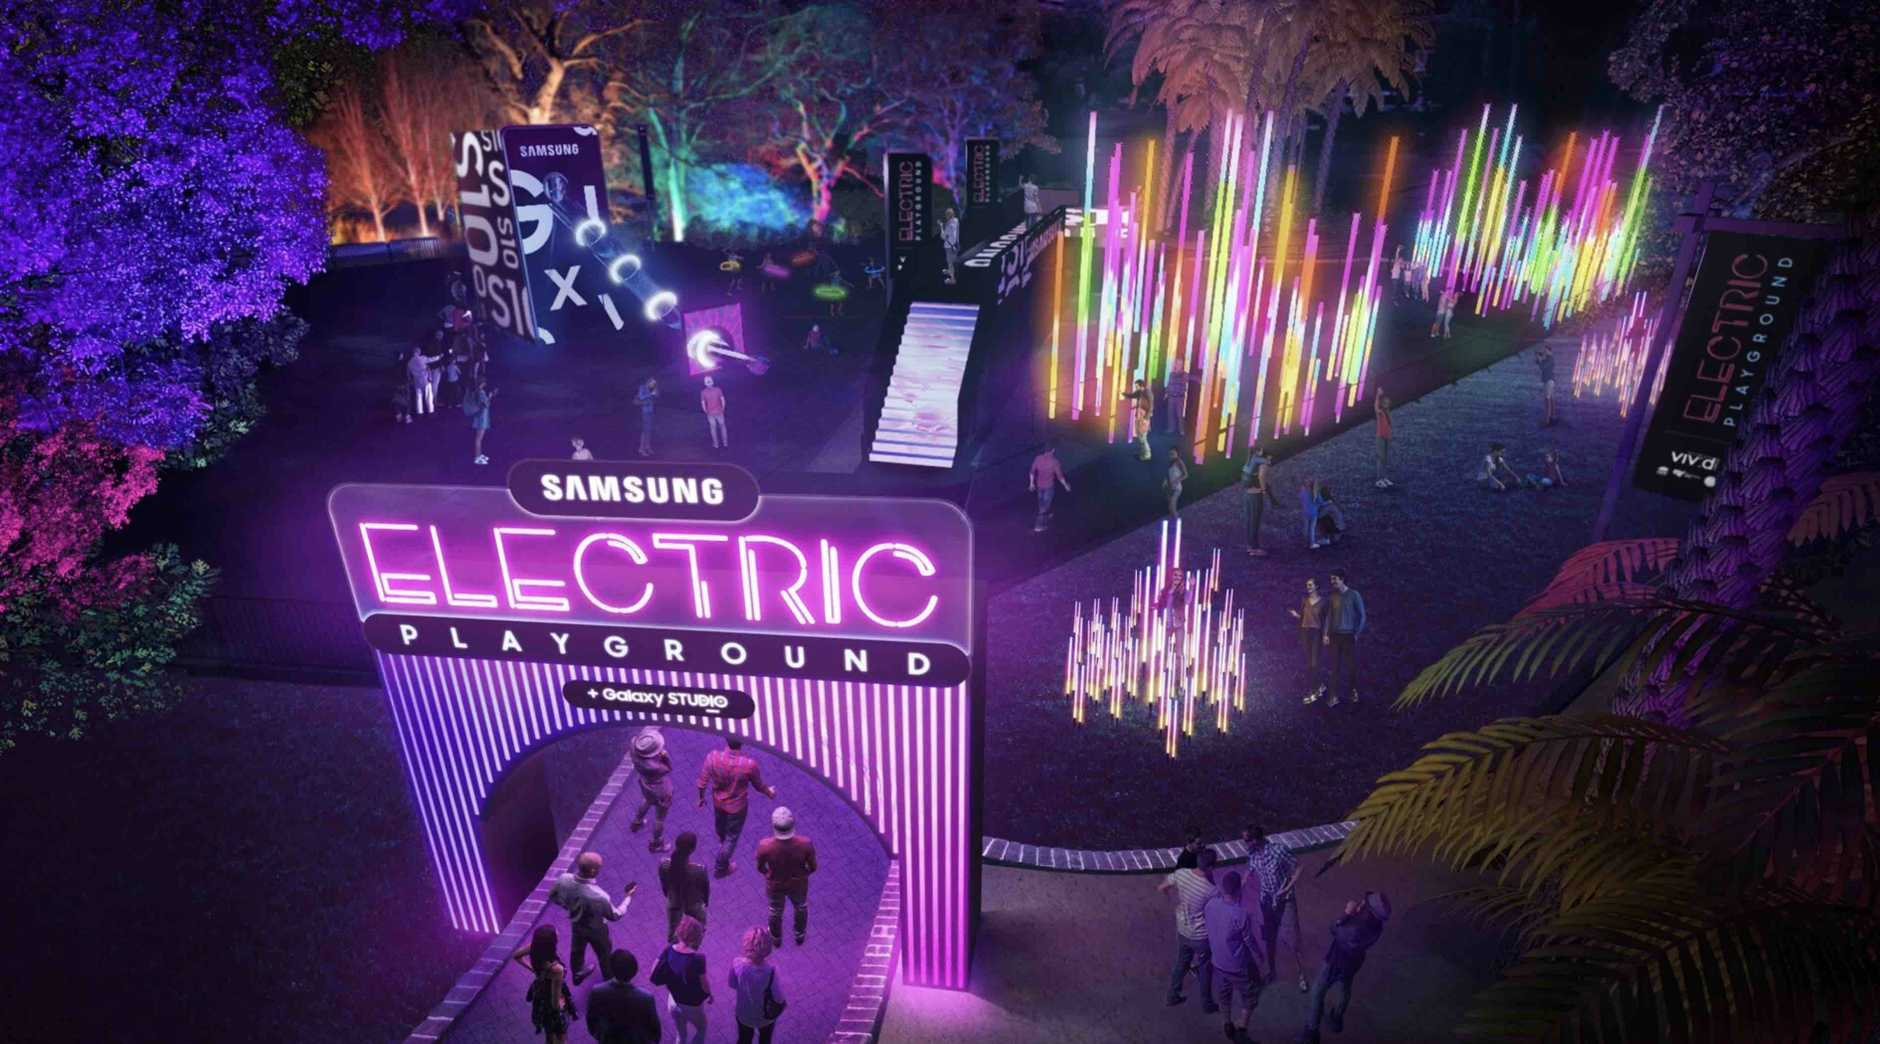 Samsung will unveil an Electric Playground at Vivid festival in Sydney later this month.